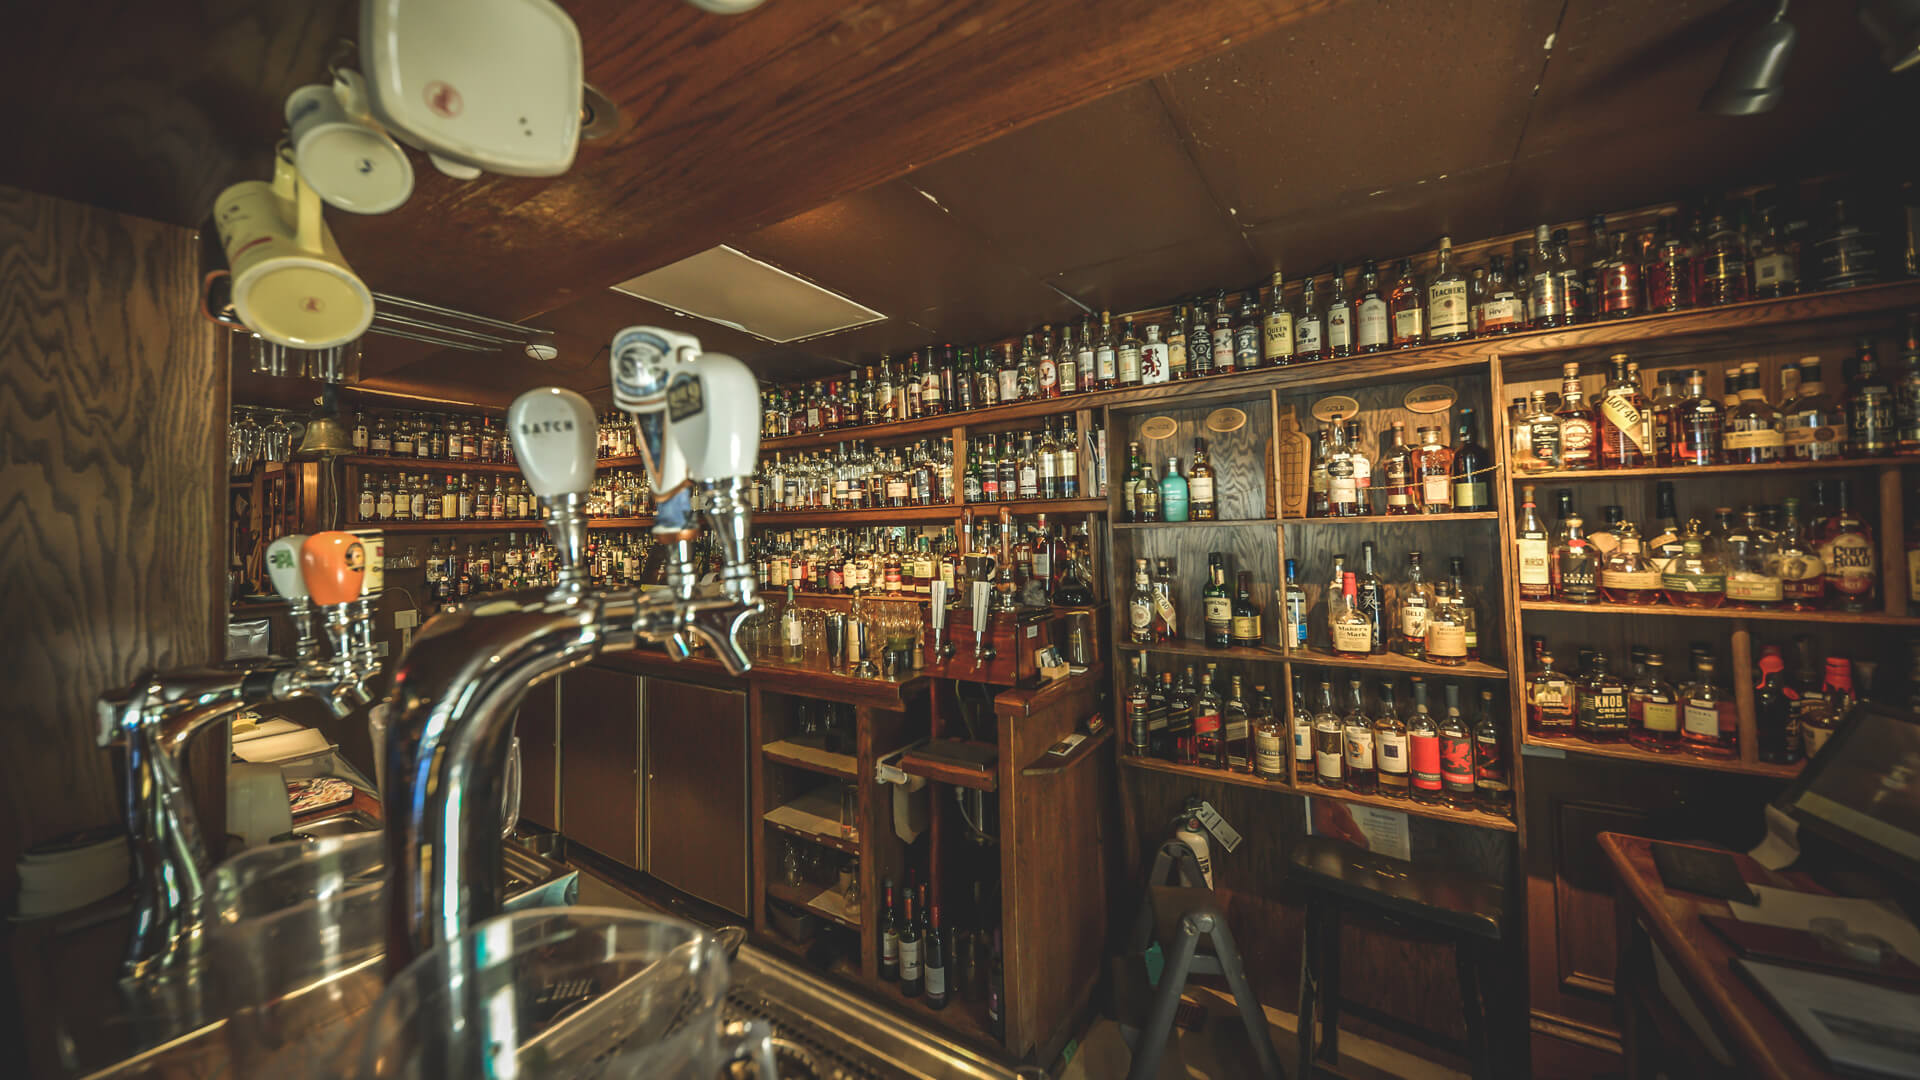 Image for a bar interior